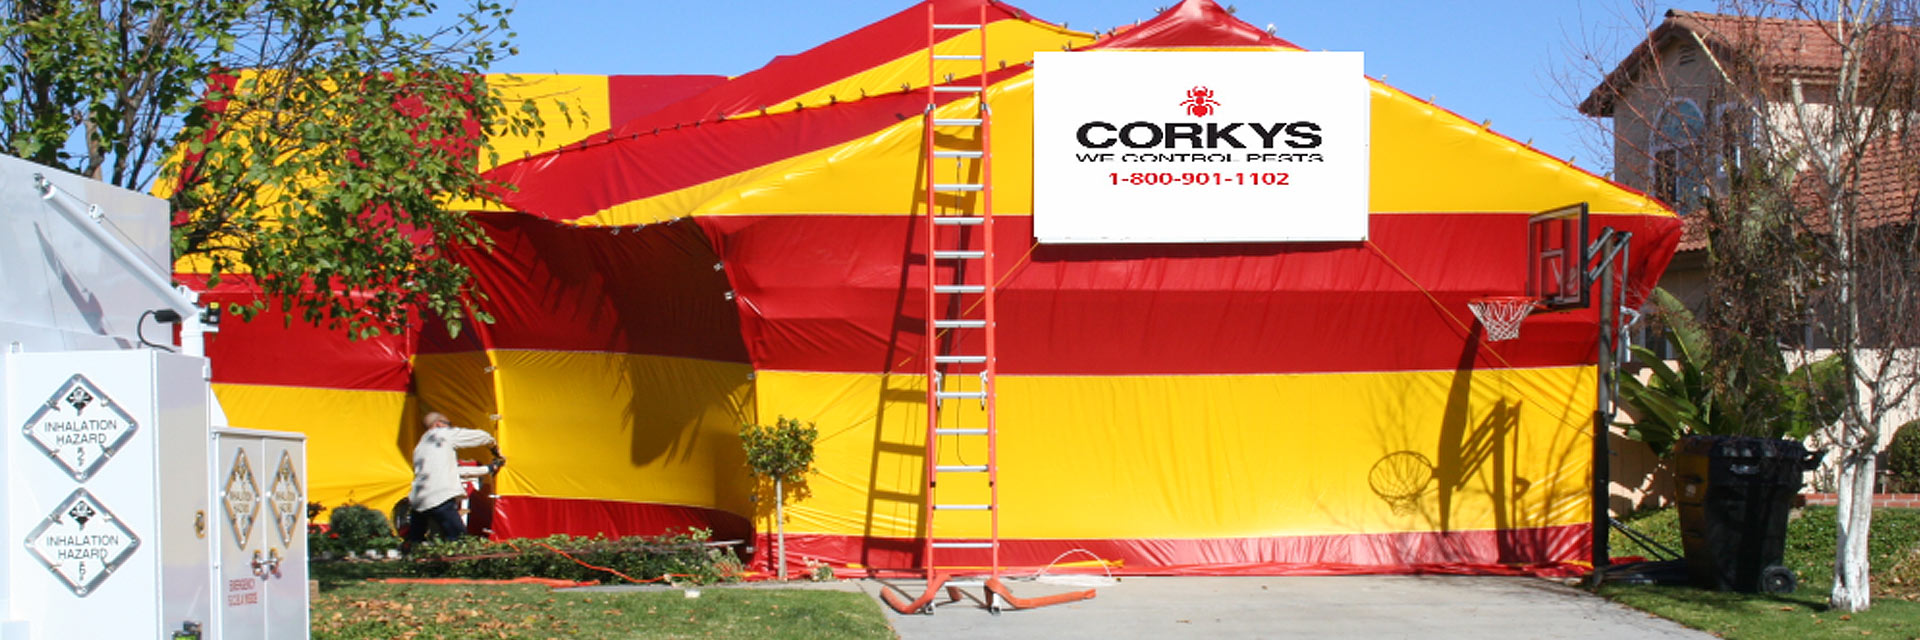 FUMIGATION SERVICES TERMITES, COCKROACHES AND BED BUGS